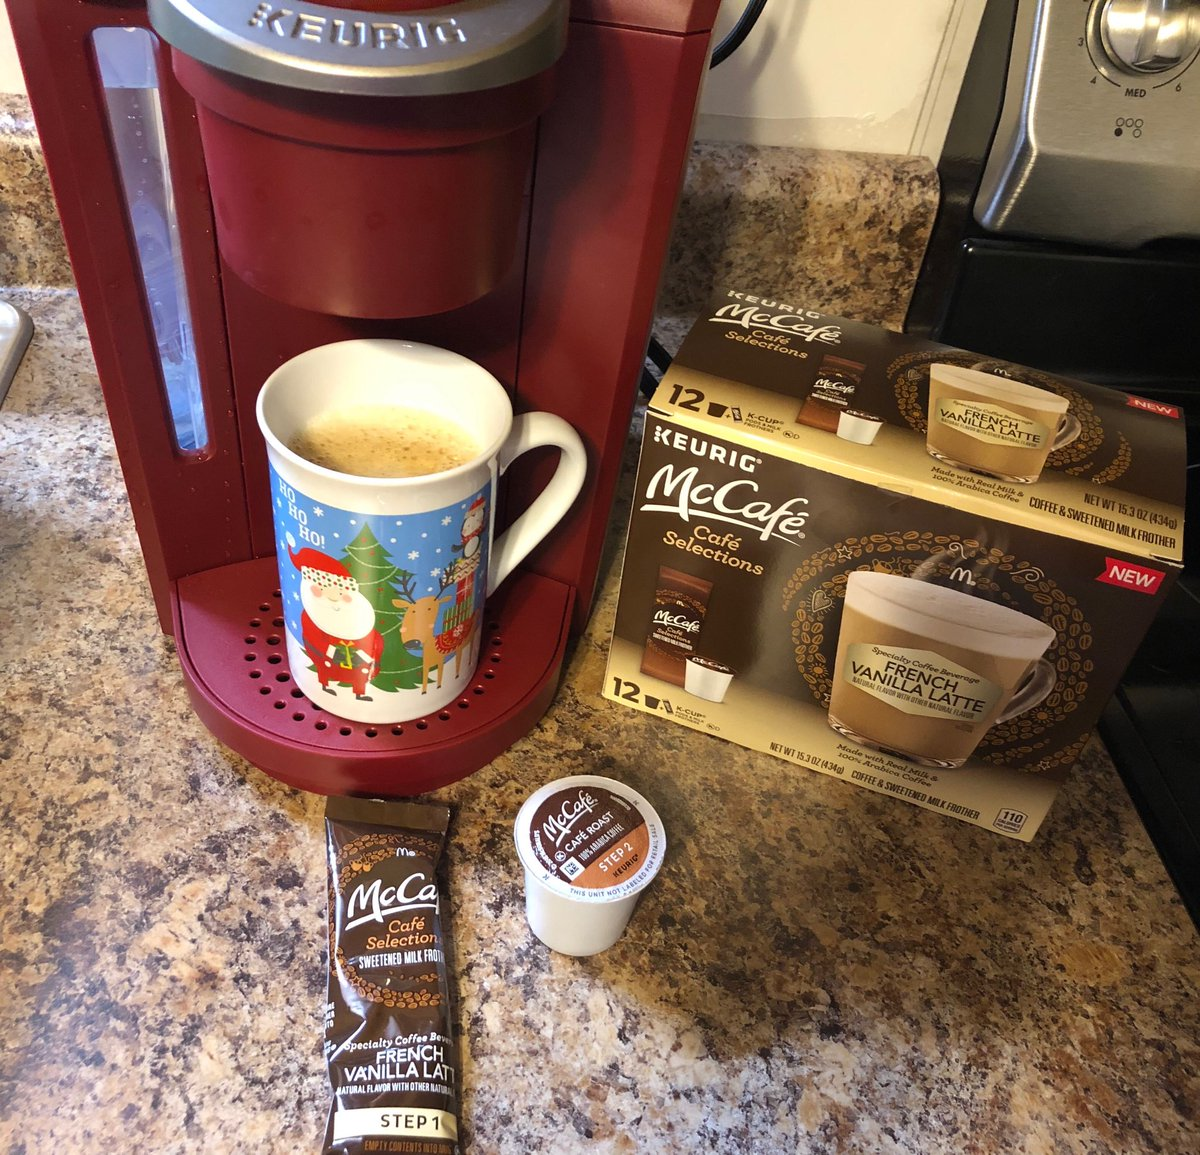 I love how satisfyingly sweet & creamy McCafe Selections French Vanilla Latte's at home are using Keurig K-cup pods and powdered milk frother packets now found at Walmart!!  #ad #freesamples #SimplyDeliciousAtWalmart @Walmart @SheSpeaksUp<br>http://pic.twitter.com/Eg8qNPjMHk